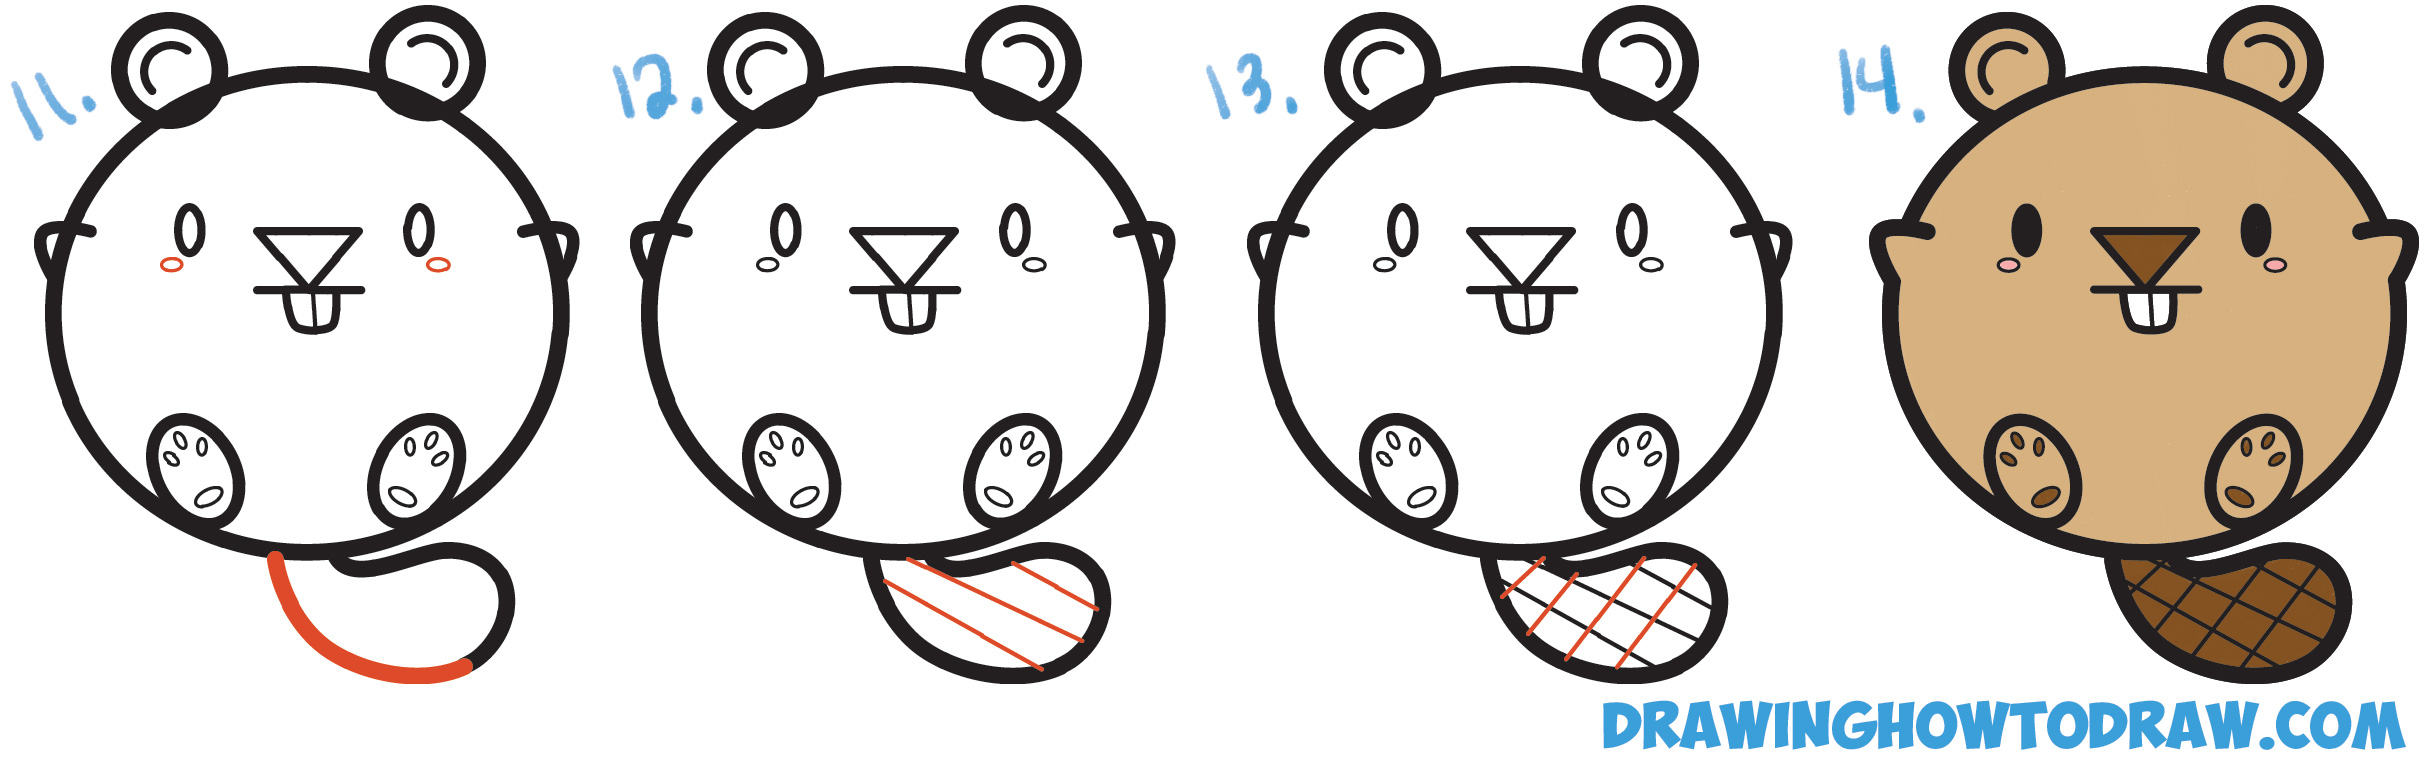 2429x764 Learn How To Draw A Cute Cartoon Beaver With Letters Easy Step By